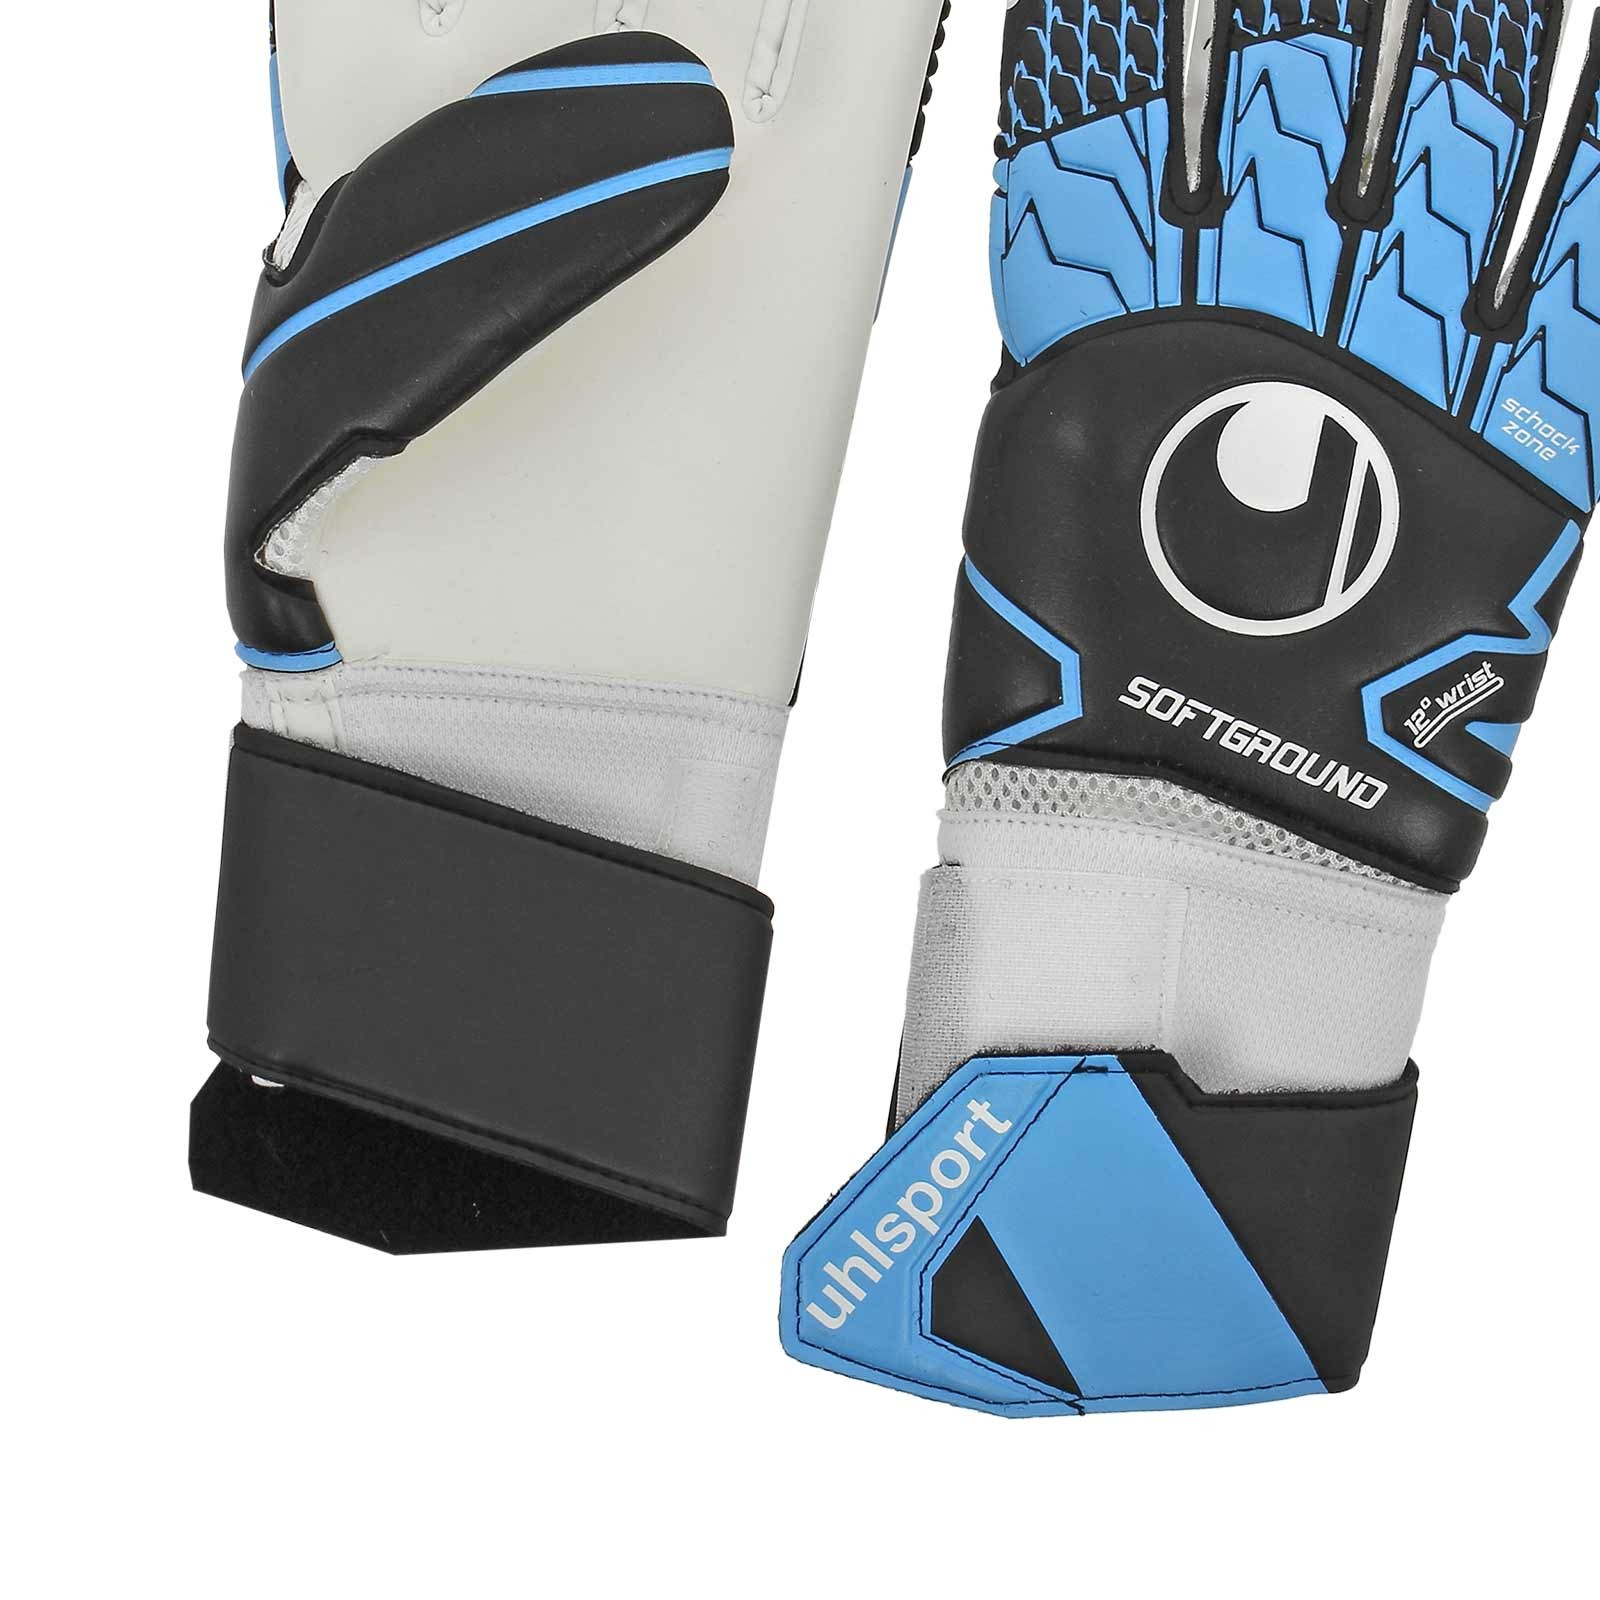 Uhlsport-SOFT-HN-Competition-Gant-de-Gardien-Keeper-Gloves-Bleu-noir miniature 7